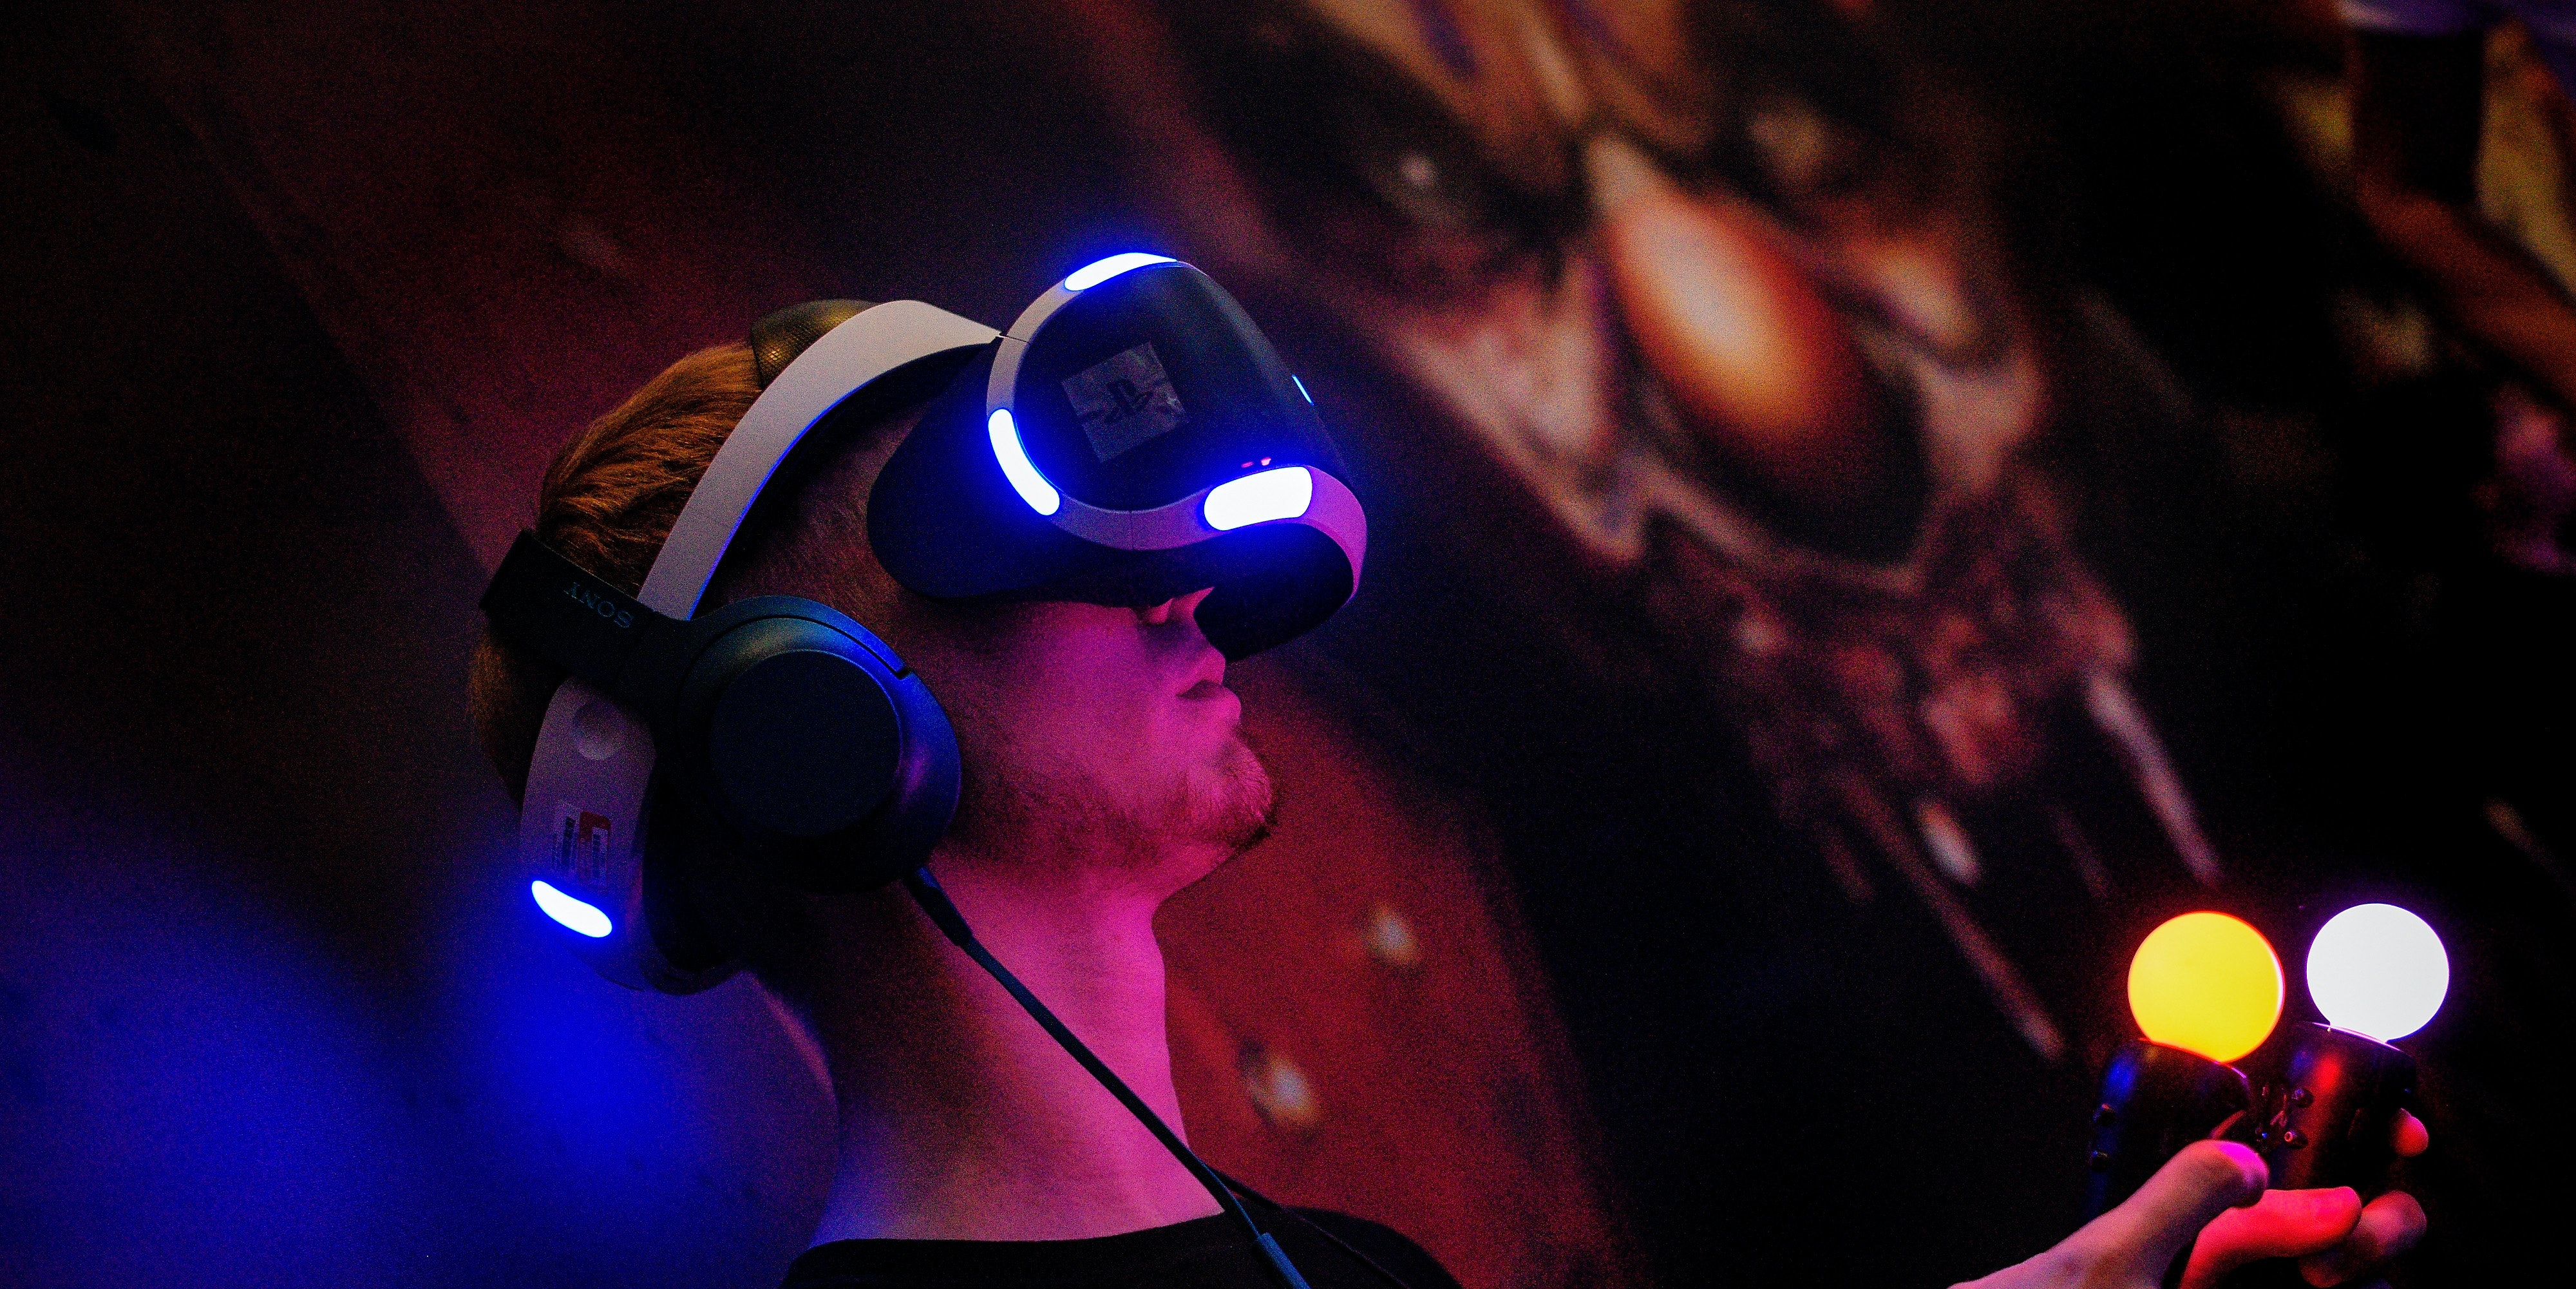 GERMANY - AUGUST 17: A Visitor try out a VR game at the Sony Play Station stand at the Gamescom 2016 gaming trade fair during the media day on August 17, 2016 in Cologne, Germany. Gamescom is the world's largest digital gaming trade fair and will be open to the public from August 18-21. (Photo by Sascha Schuermann/Getty Images)